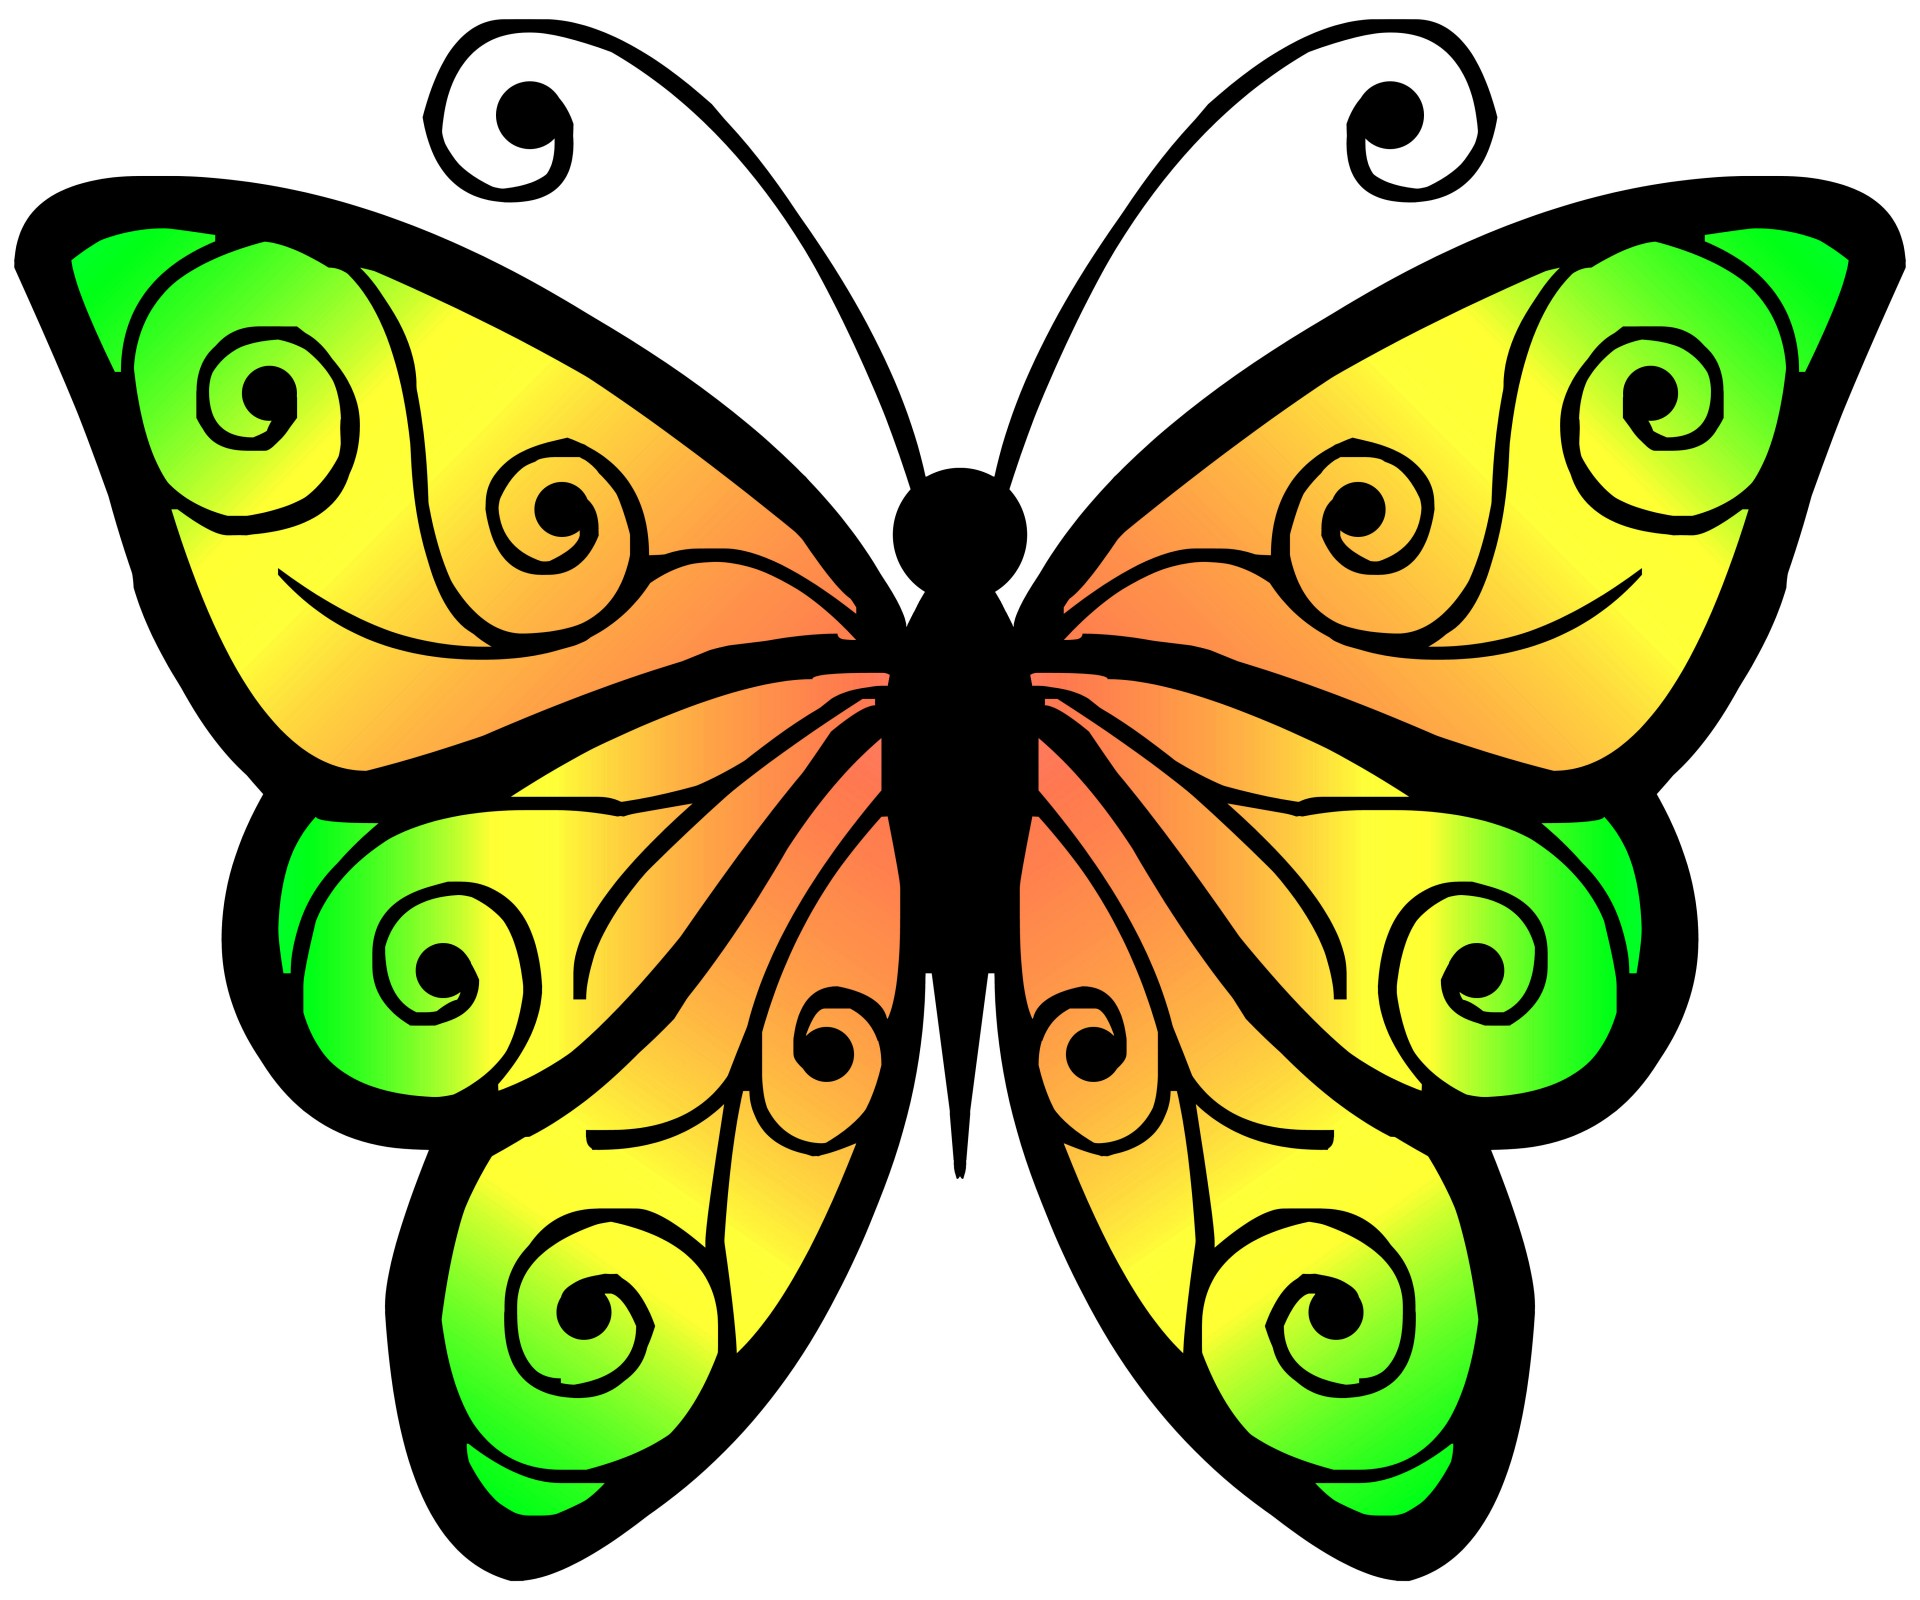 1920x1600 Collection Of Cartoon Pictures Of Butterflies Buy Any Image